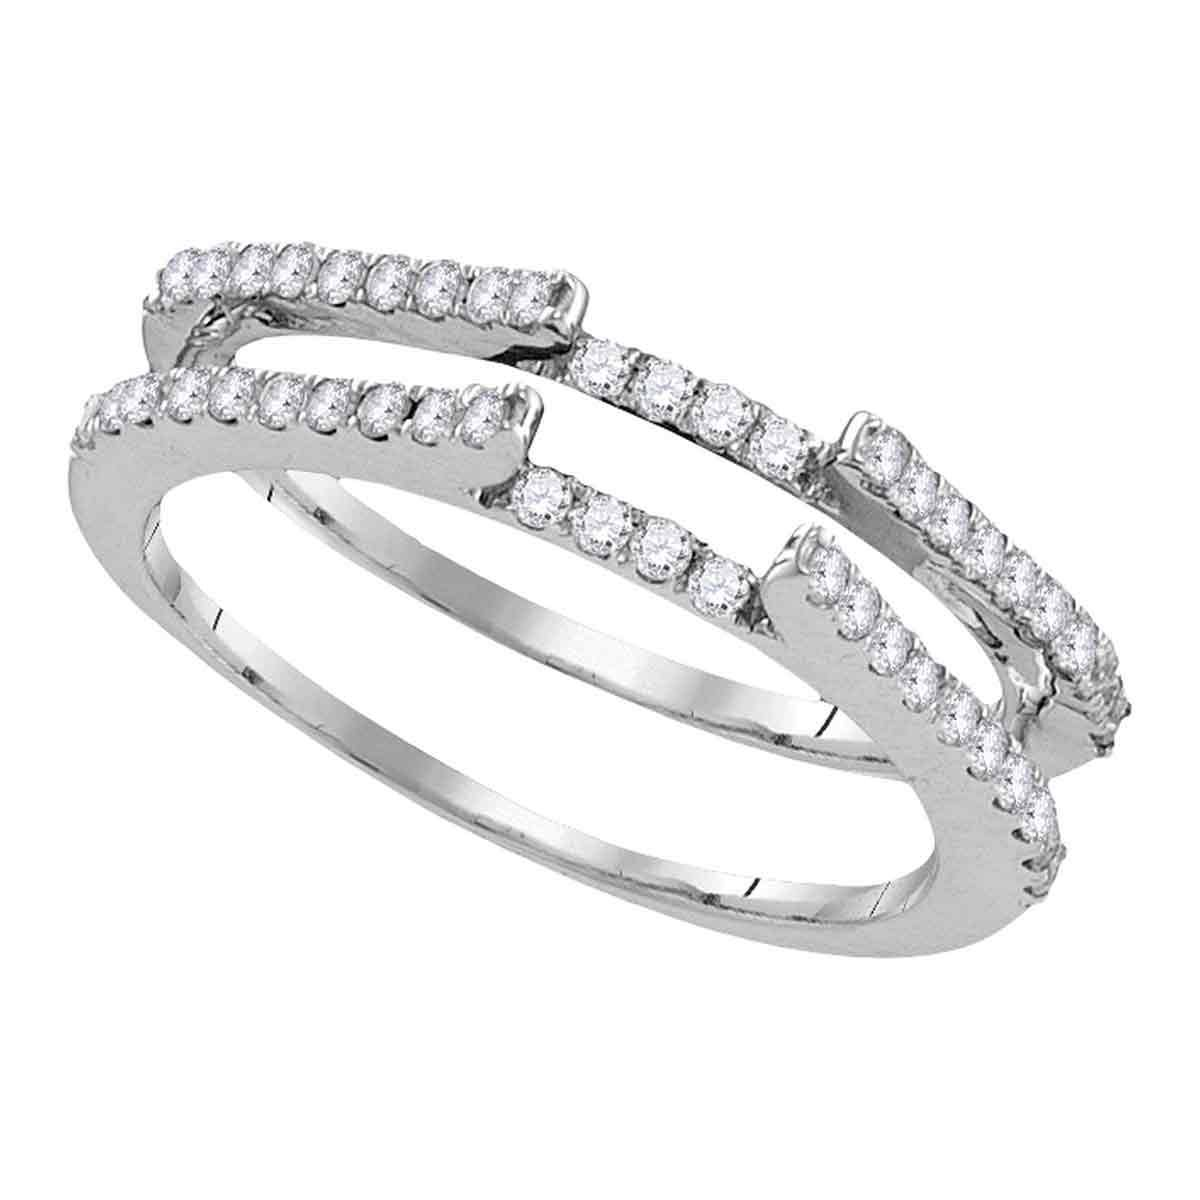 Jewels By Lux 14kt White Gold Womens Round Diamond Ring Guard Wrap Solitaire Enhancer 1/2 Cttw Ring Size 7